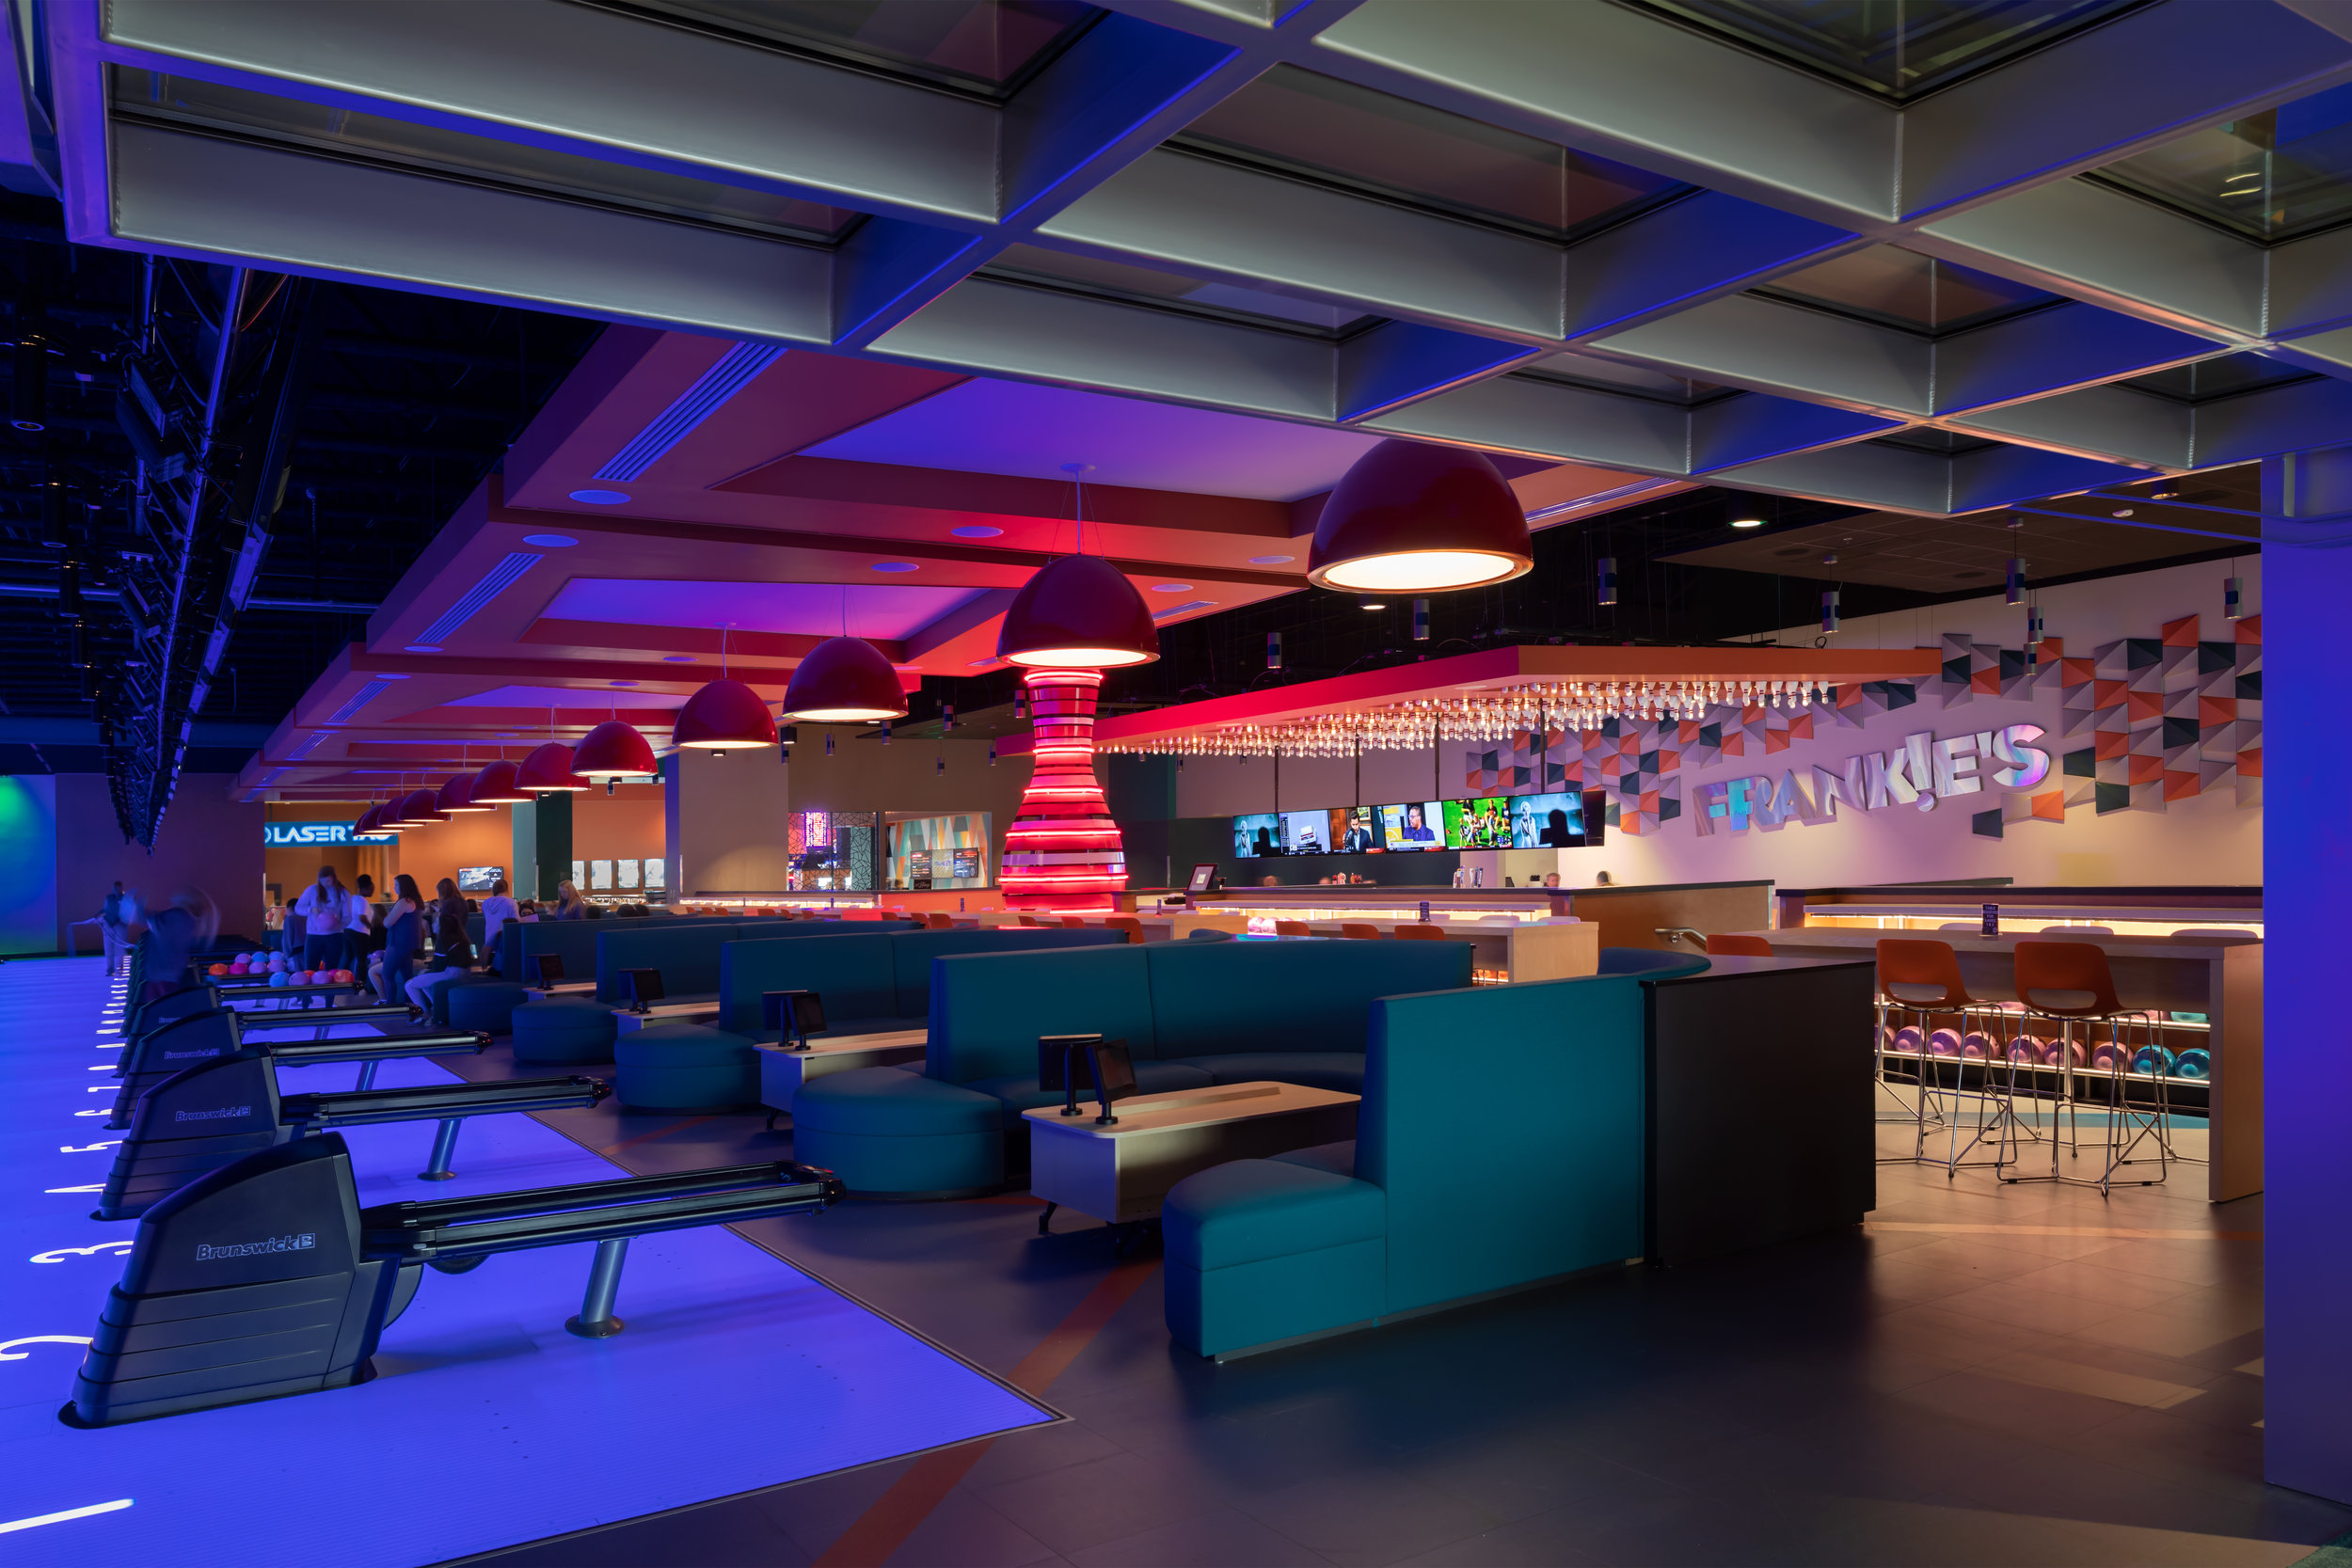 ADW-Entertainment-Frankie's-Fun-Park-Huntersville-NC-Interior-Bowling Seating.jpg